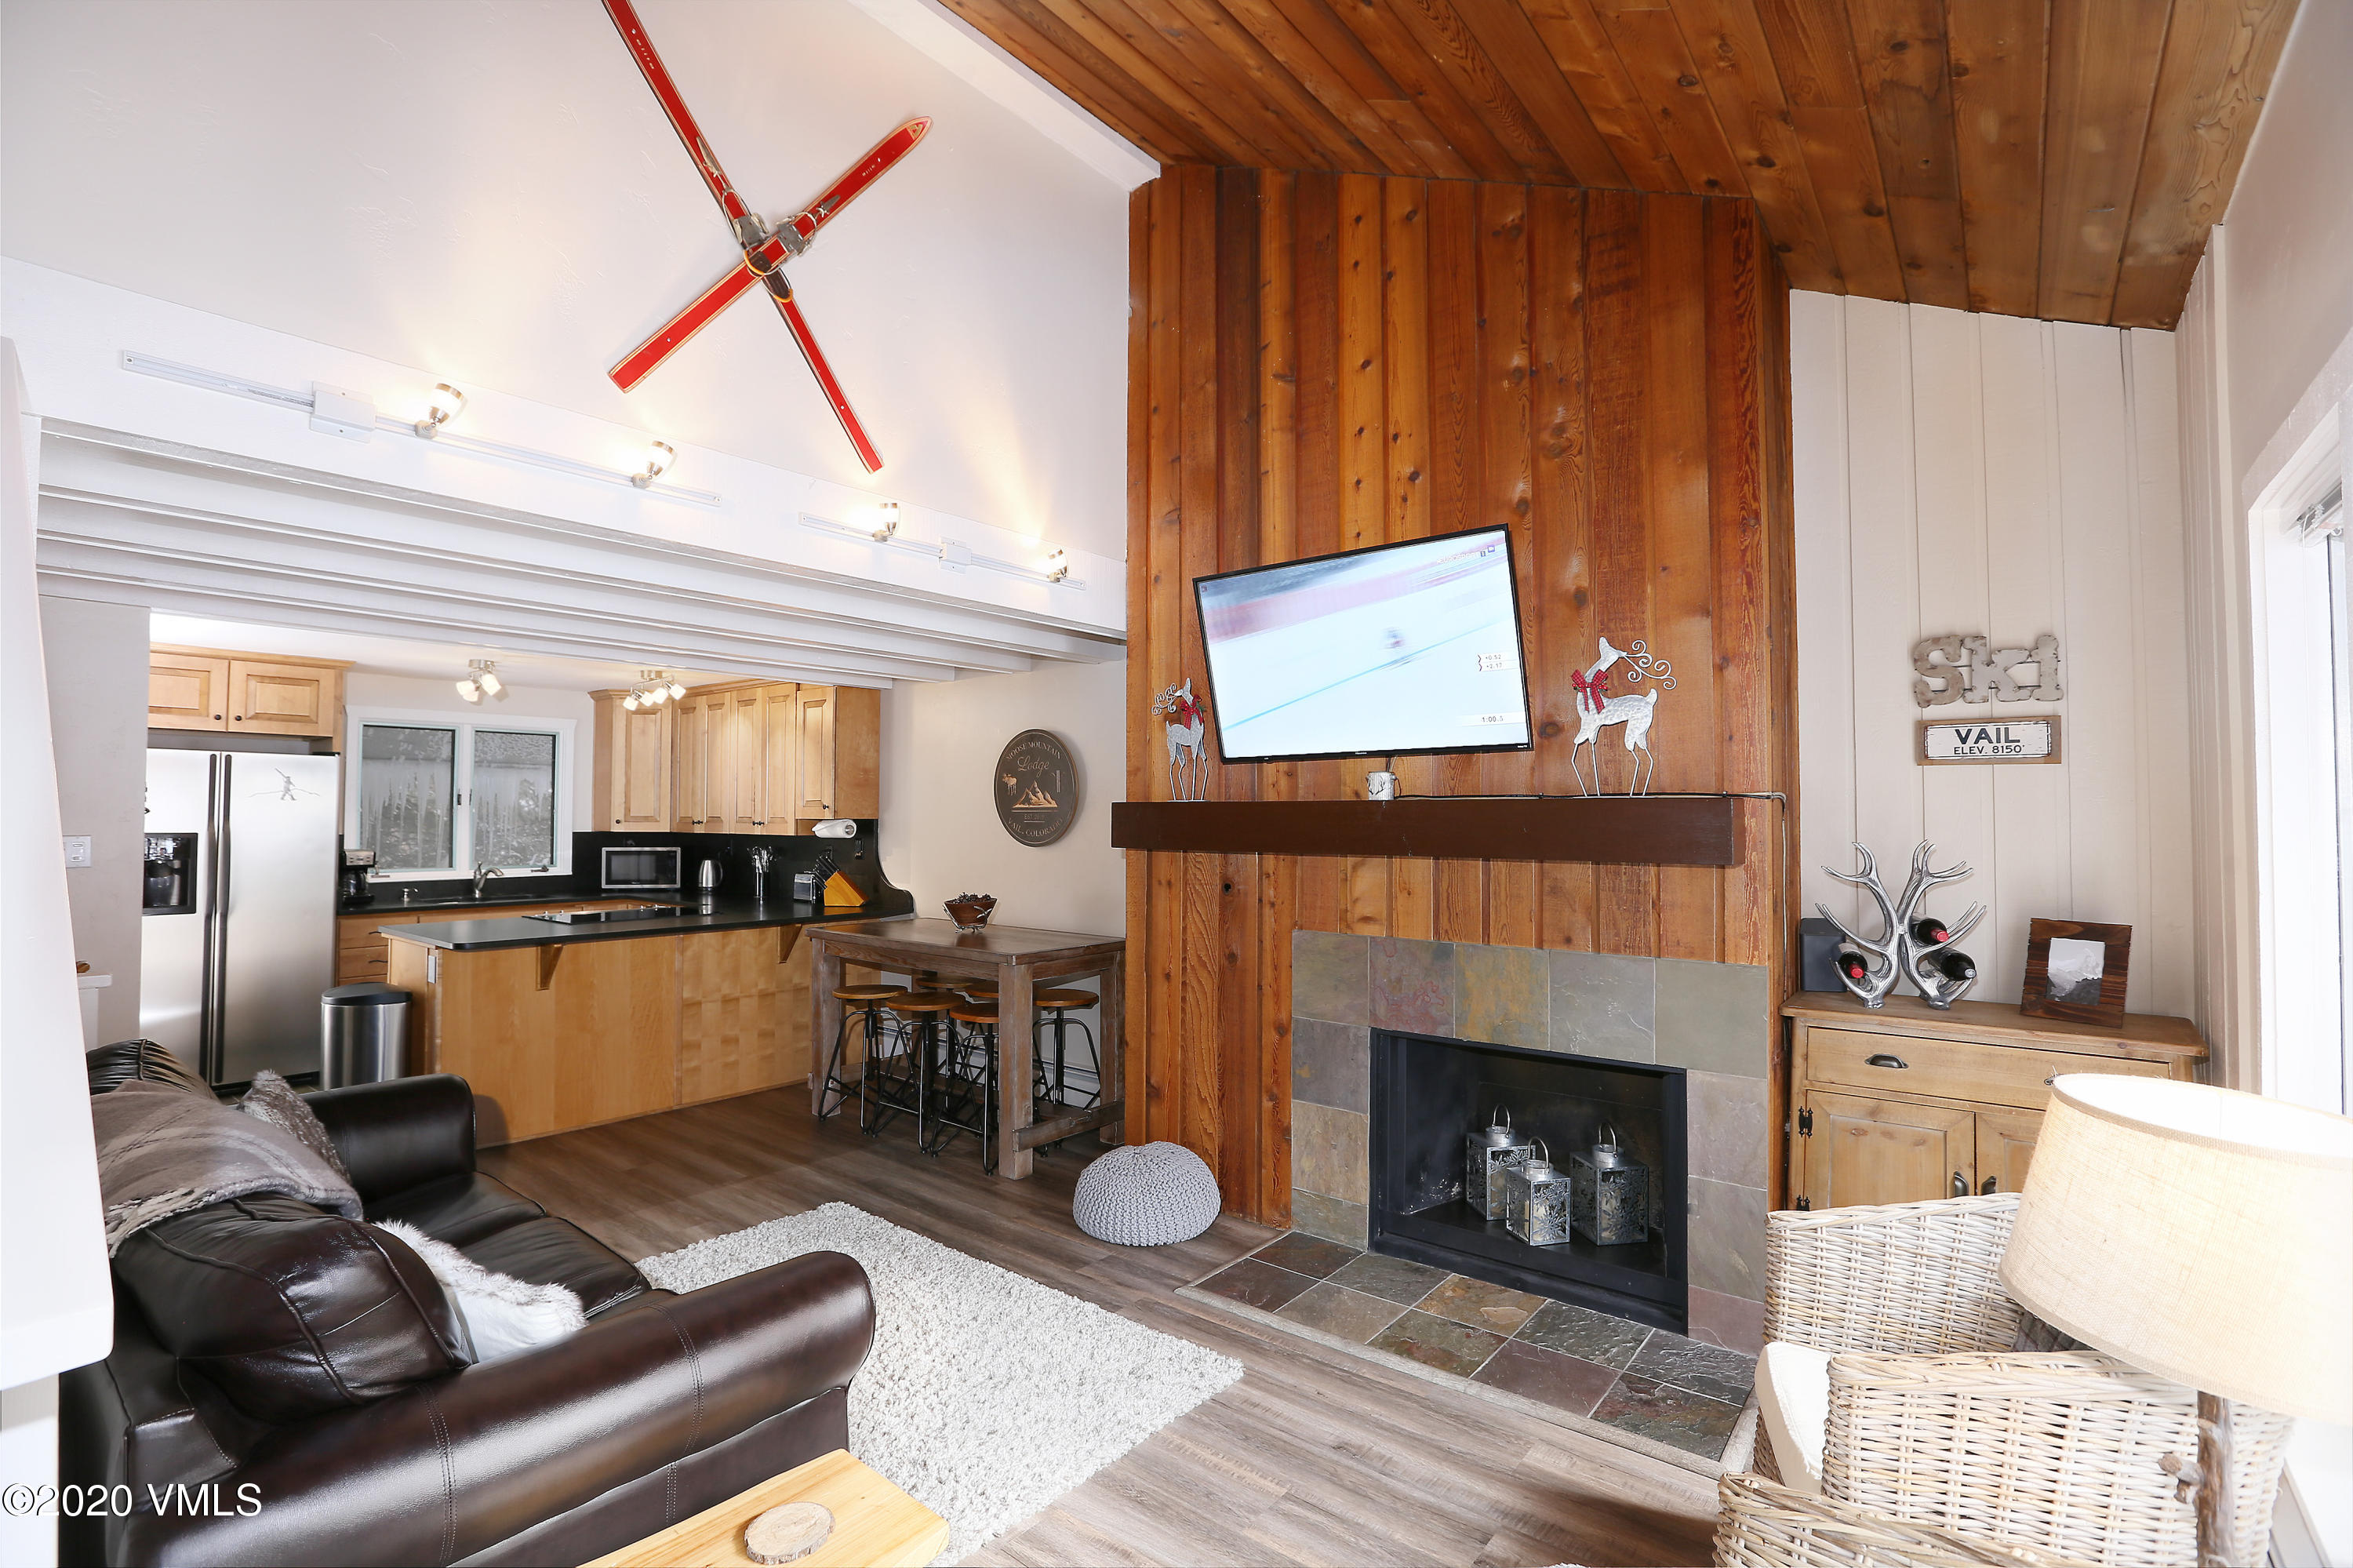 Elegantly renovated spaces in this 2-bedroom mountain retreat with 3rd sleeping area for your guests. The beautiful setting in West Vail has a large south facing deck plus it is right on the Vail bus route and only minutes from Cascade, Lionshead and Vail Villages for skiing, shopping and dining. Take easy walks to fish on Gore Creek, hike the many trails nearby, or enjoy the great park only steps away. Inside you can enjoy the cathedral ceilings, new flooring throughout, new paint, granite kitchen counters, maple kitchen cabinets, and heated floors in the entryway and kitchen. Low HOA dues with heat included and 2 parking spaces make it perfect for a vacation home, primary residence, or long/short term rental.